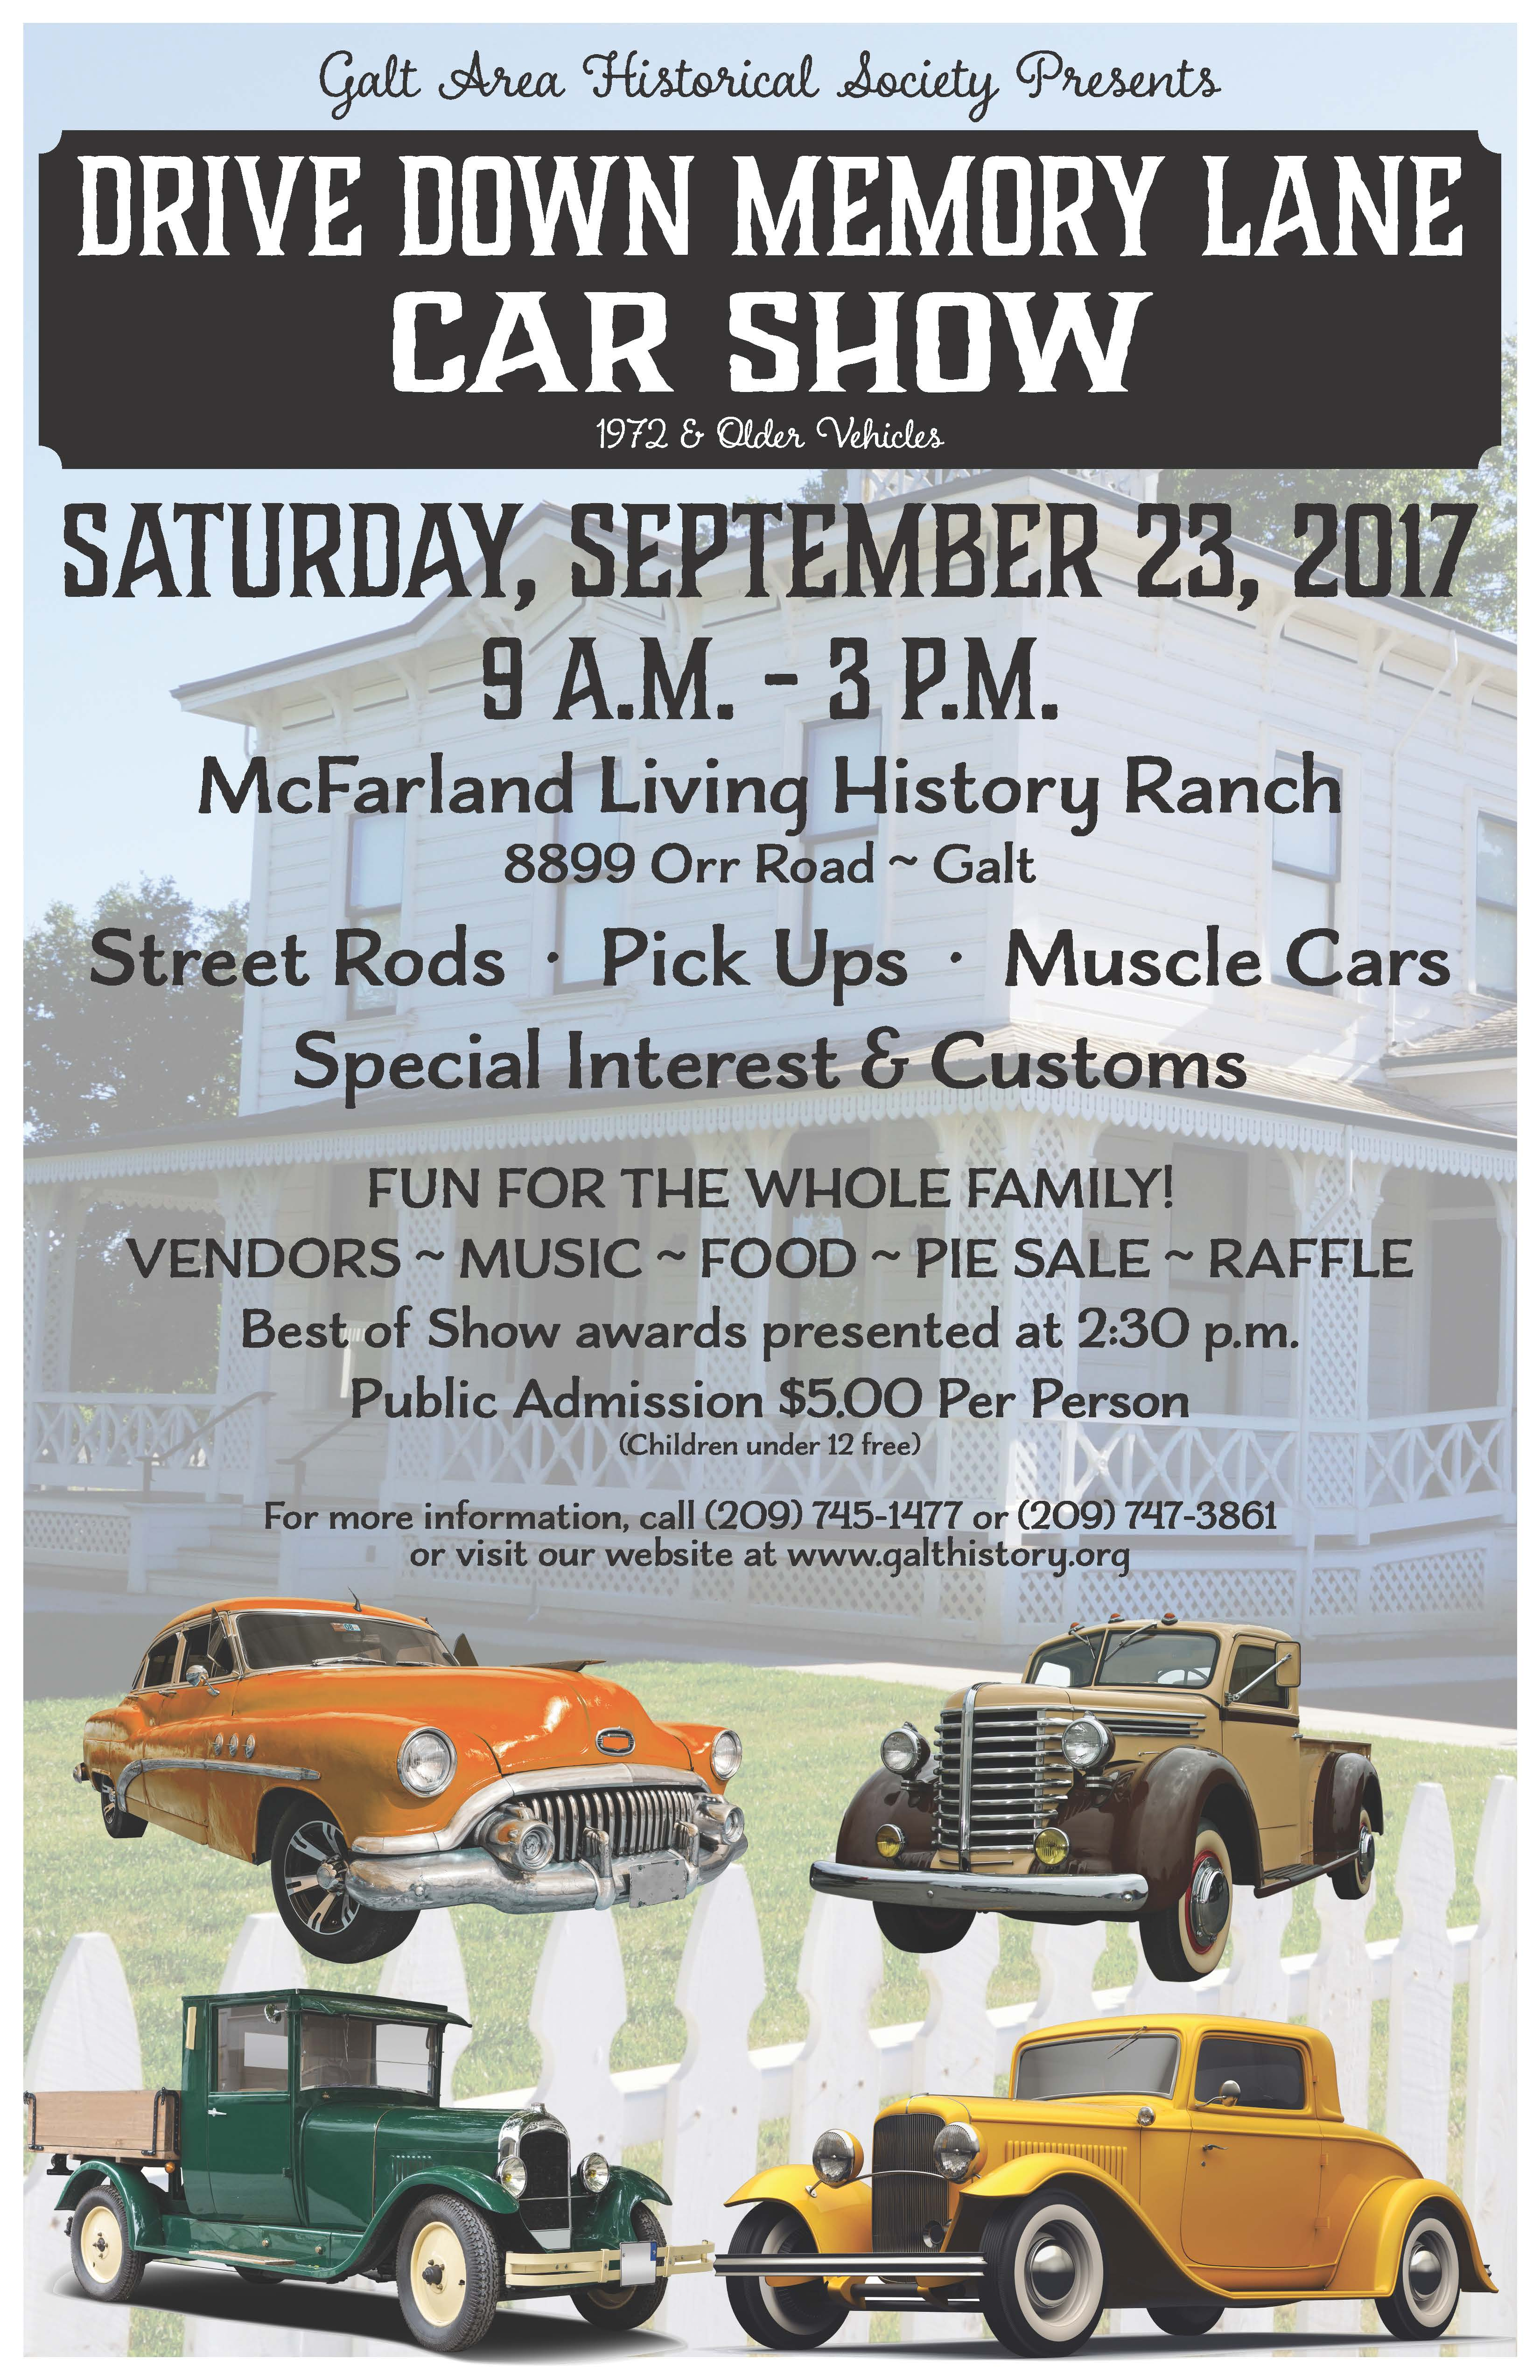 Drive Down Memory Lane Car Show presented by Galt Area Historical ...